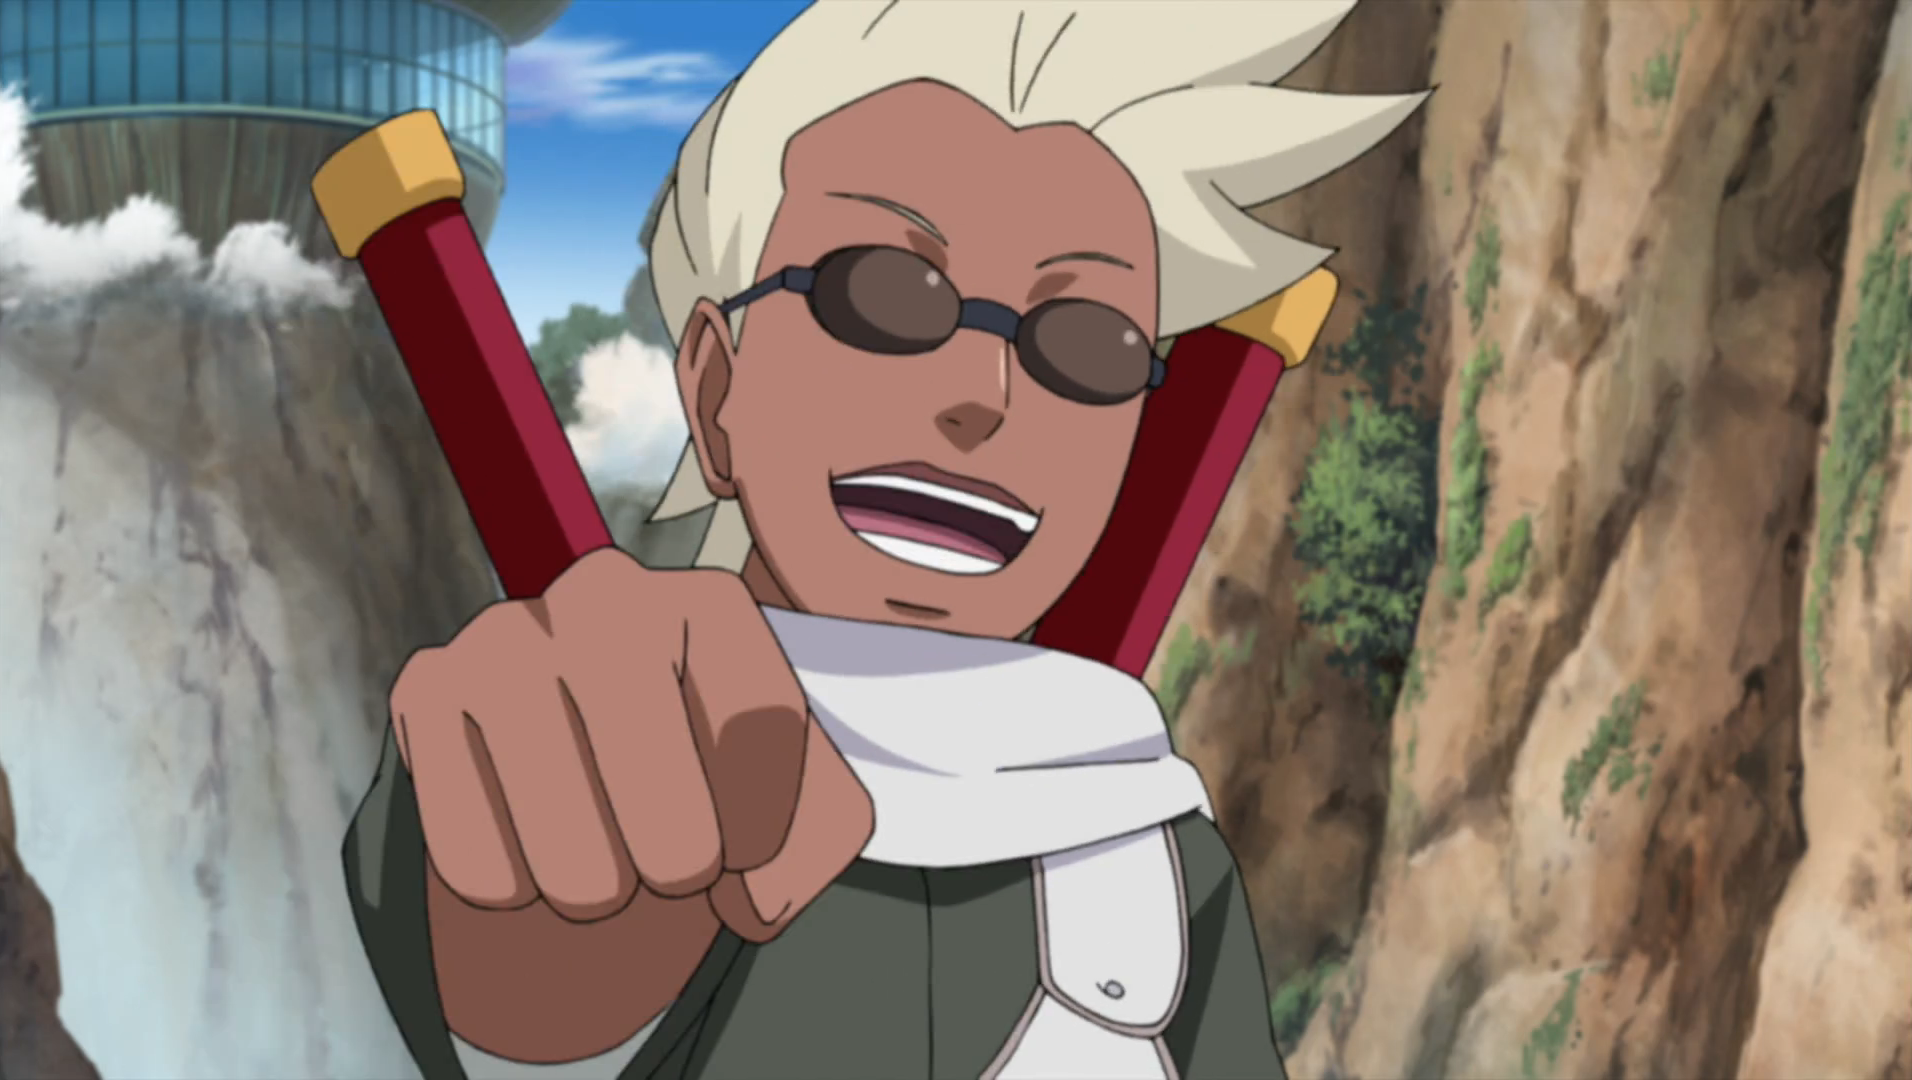 Killer bee vs naruto - photo#28